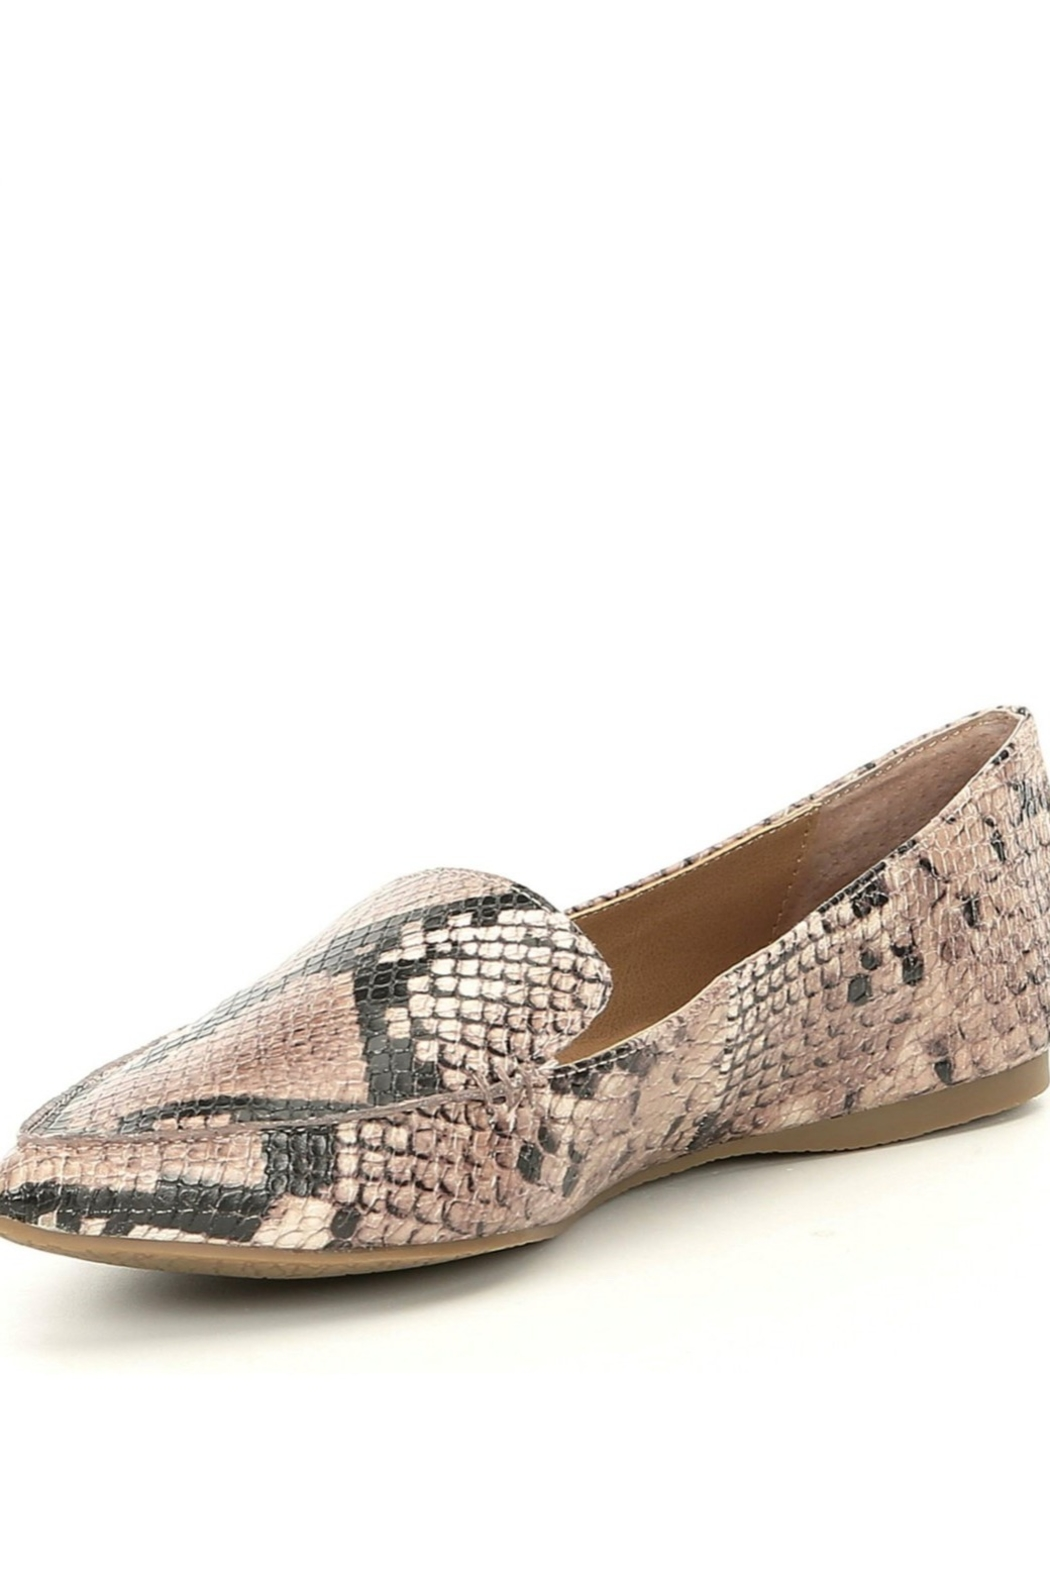 Steve Madden Feather Snake Flat - Main Image